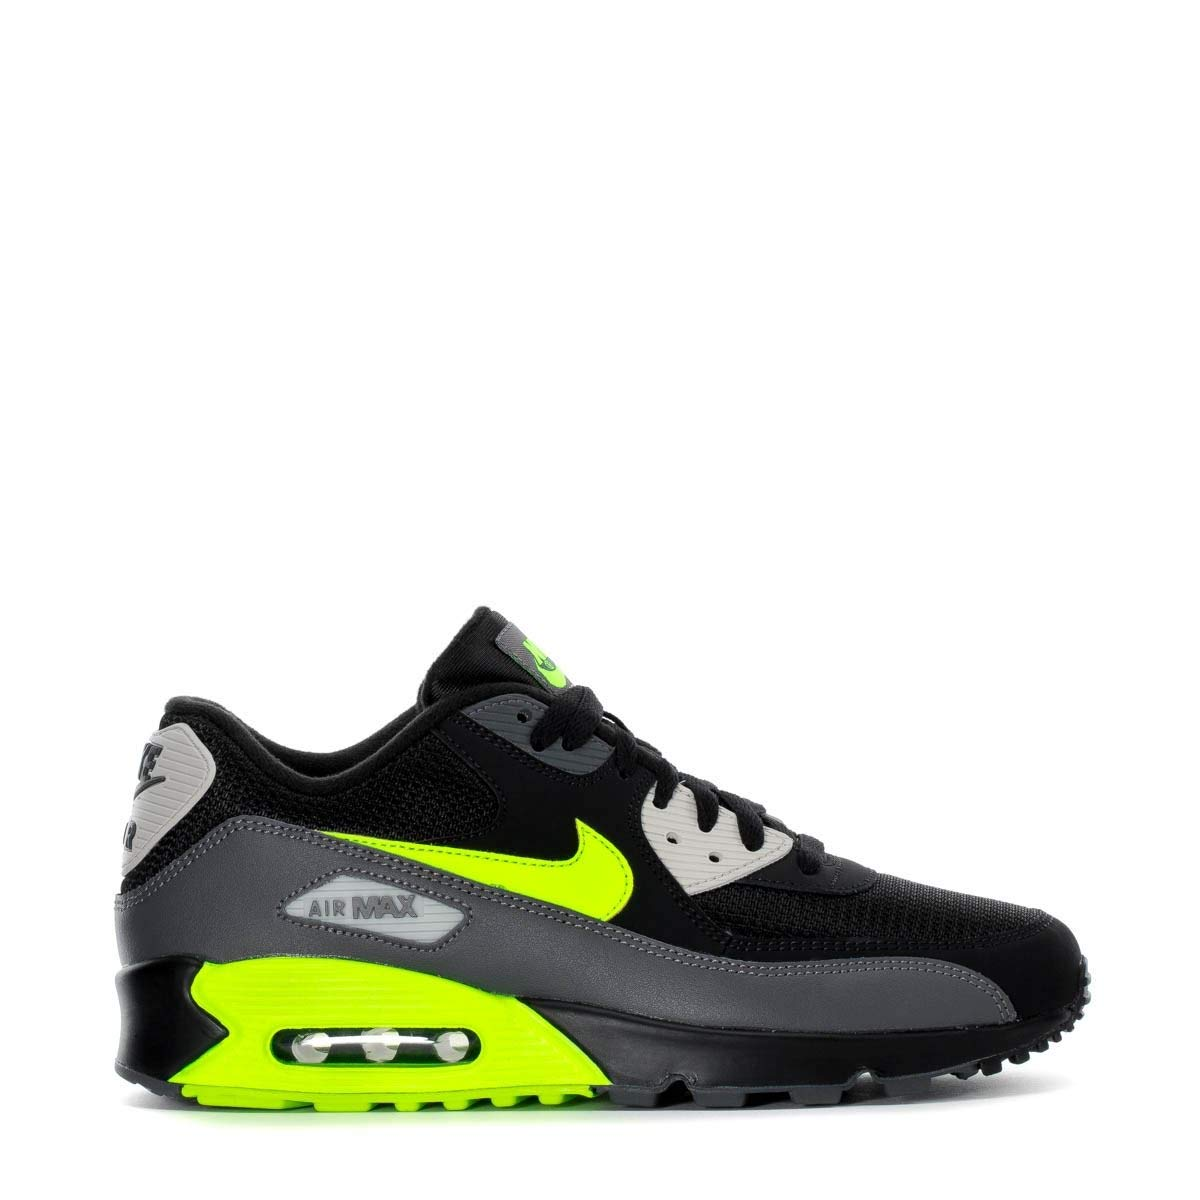 best website cd2bc 0e828 Galleon - Nike Mens Air Max 90 Essential Running Shoes Dark Grey Volt Black Bone  AJ1285-015 Size 9.5